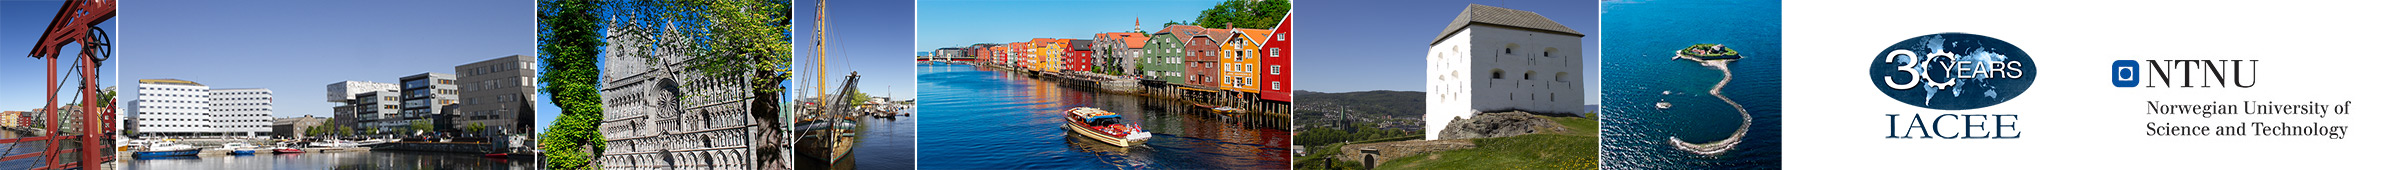 Images from Trondheim and organizer logos: IACEE and NTNU